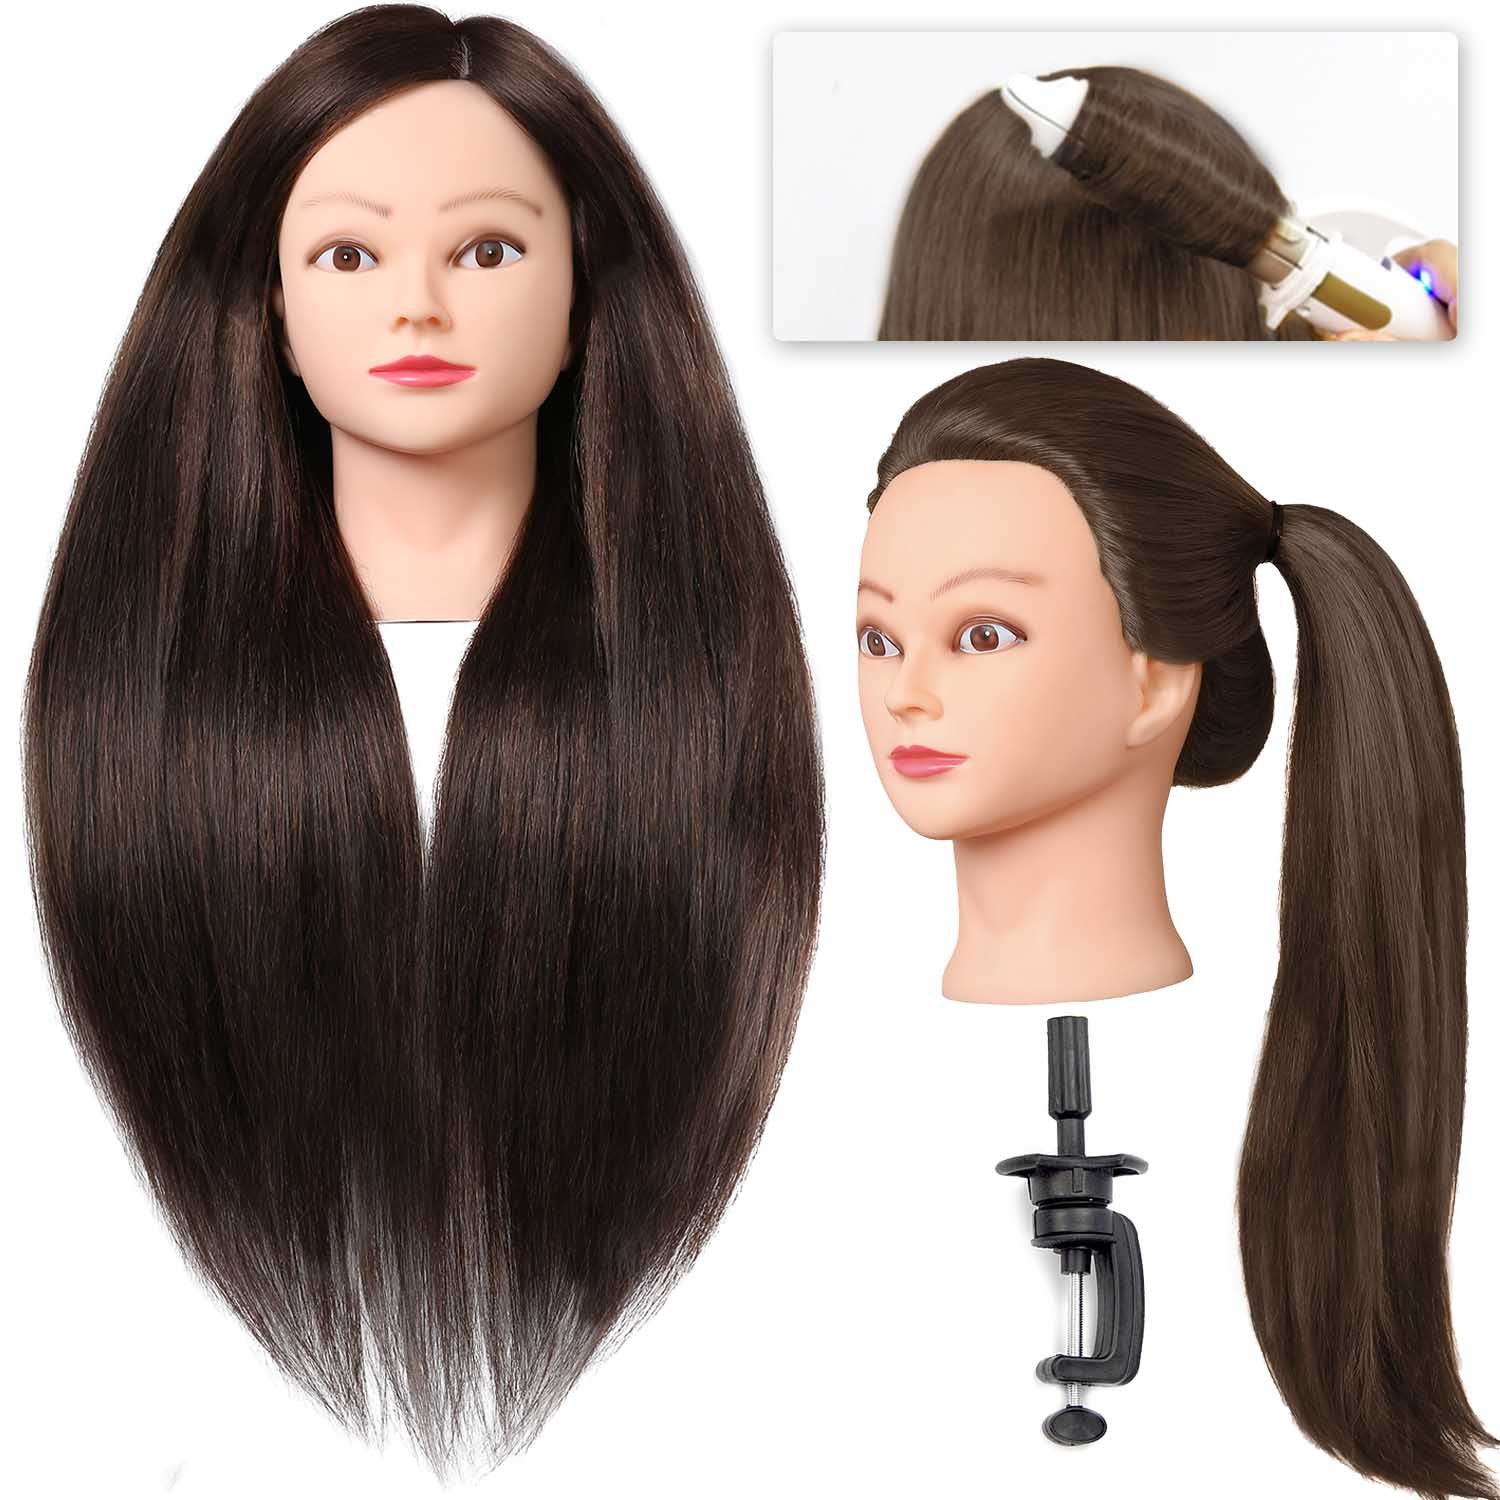 "SILKY #4 Mannequin Head with Human Hair 40% Brown 28"" Professional Bride Hairdressing Cosmetology Doll Head Training Head Free Stand holder"